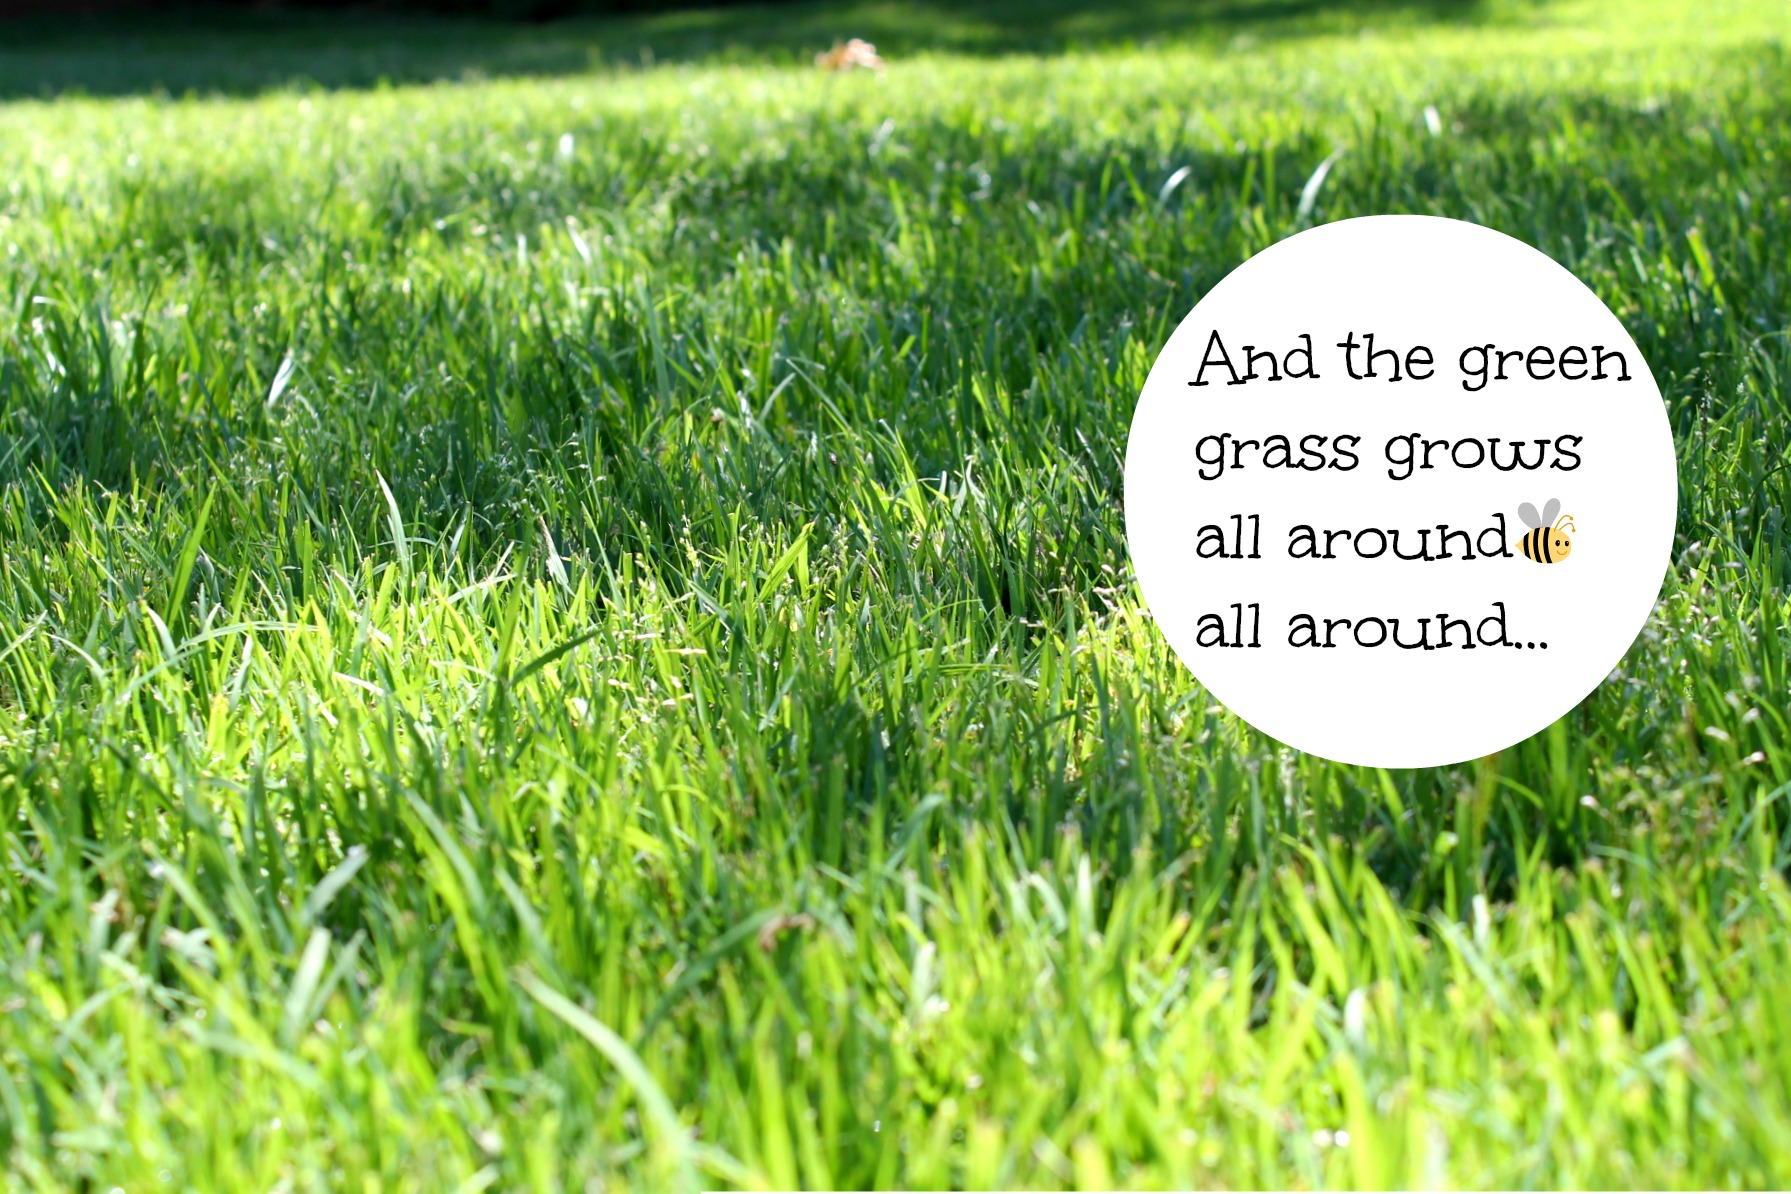 Green healthy lawn with zoysia plugs